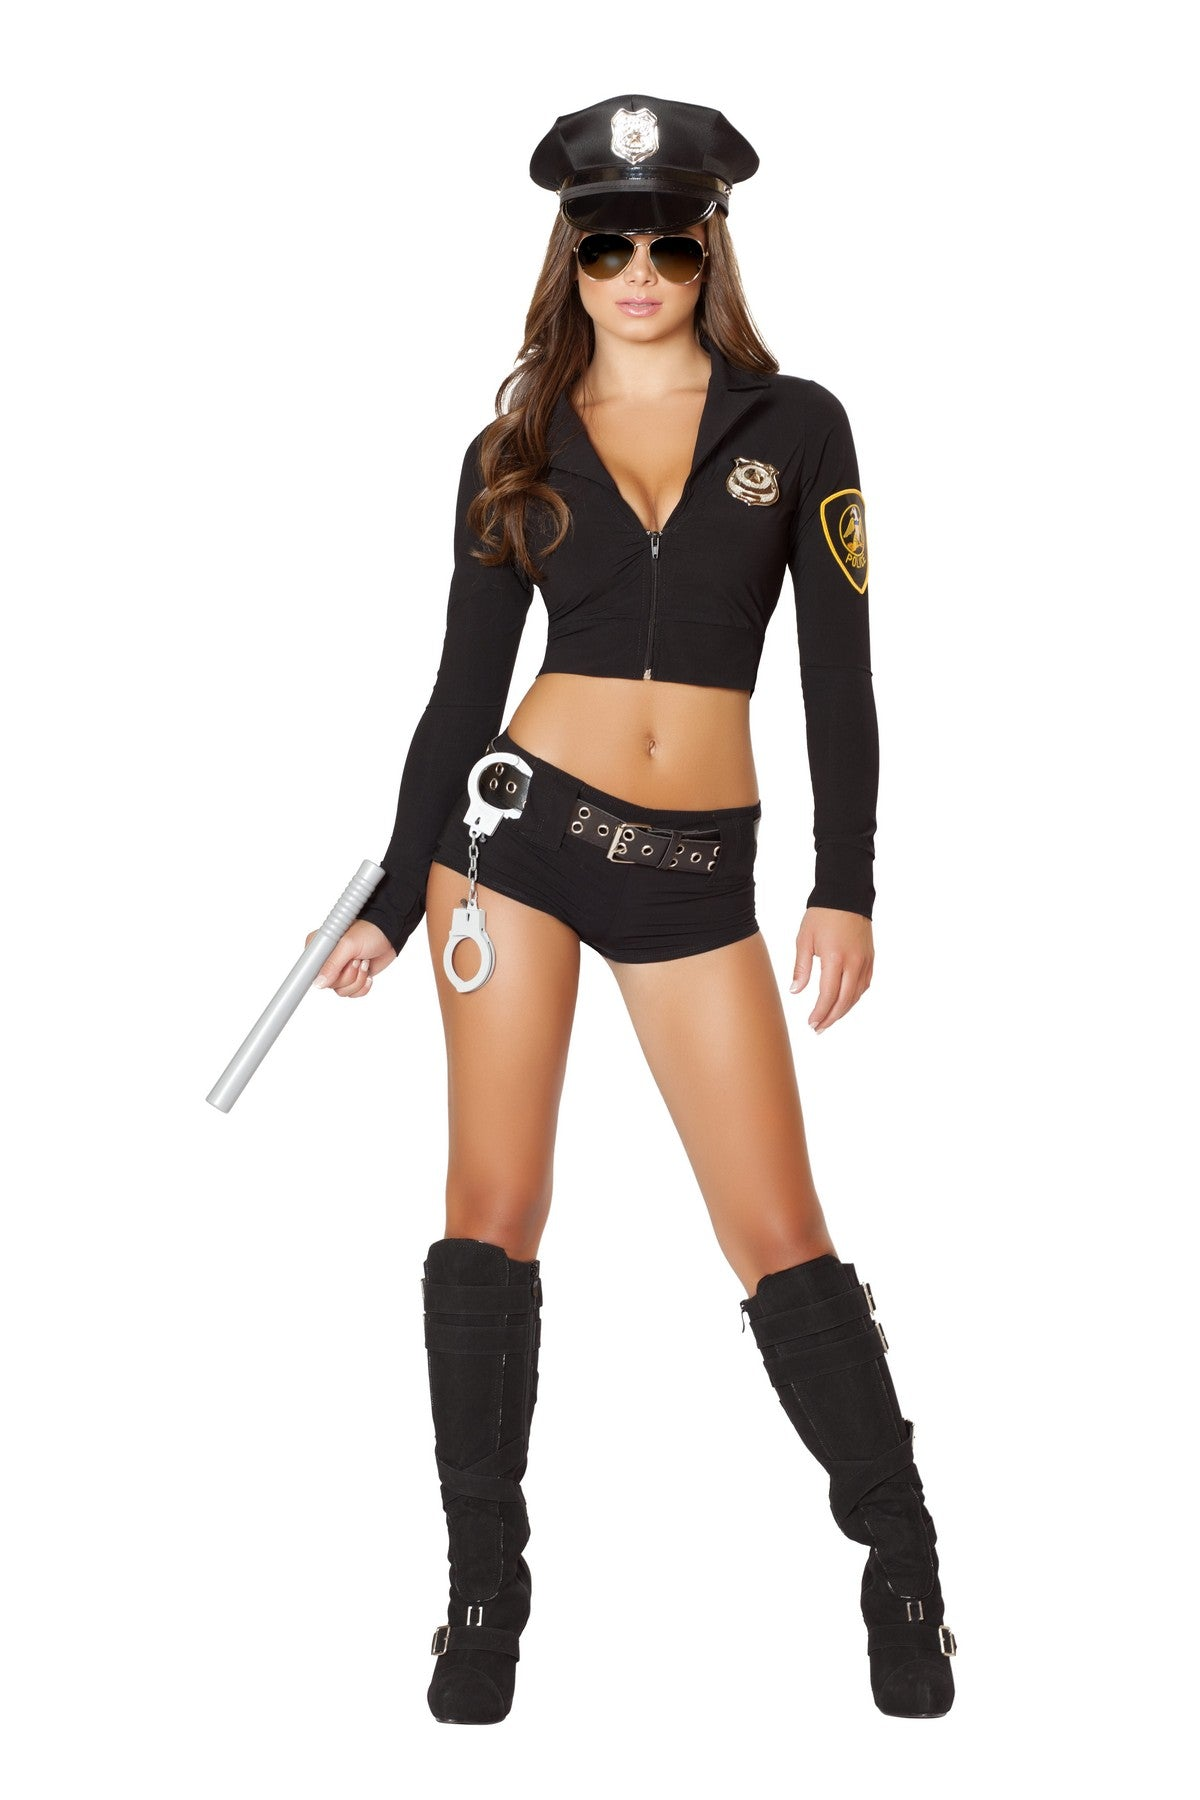 Hot Lady Officer Costume Set